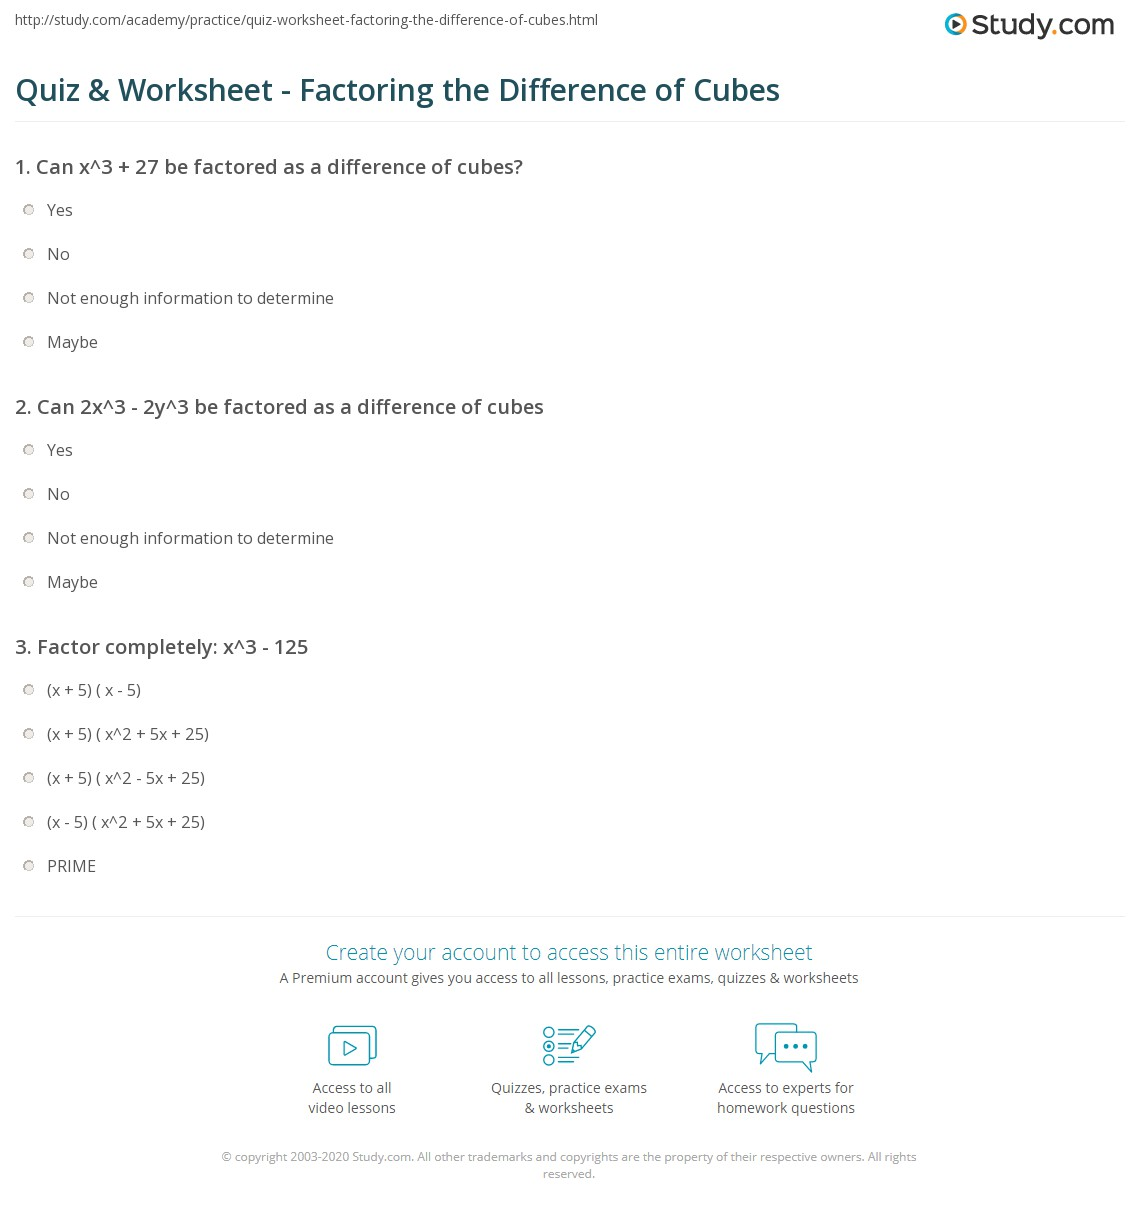 worksheet Factoring Completely Worksheet quiz worksheet factoring the difference of cubes study com print how to factor formula practice problems worksheet